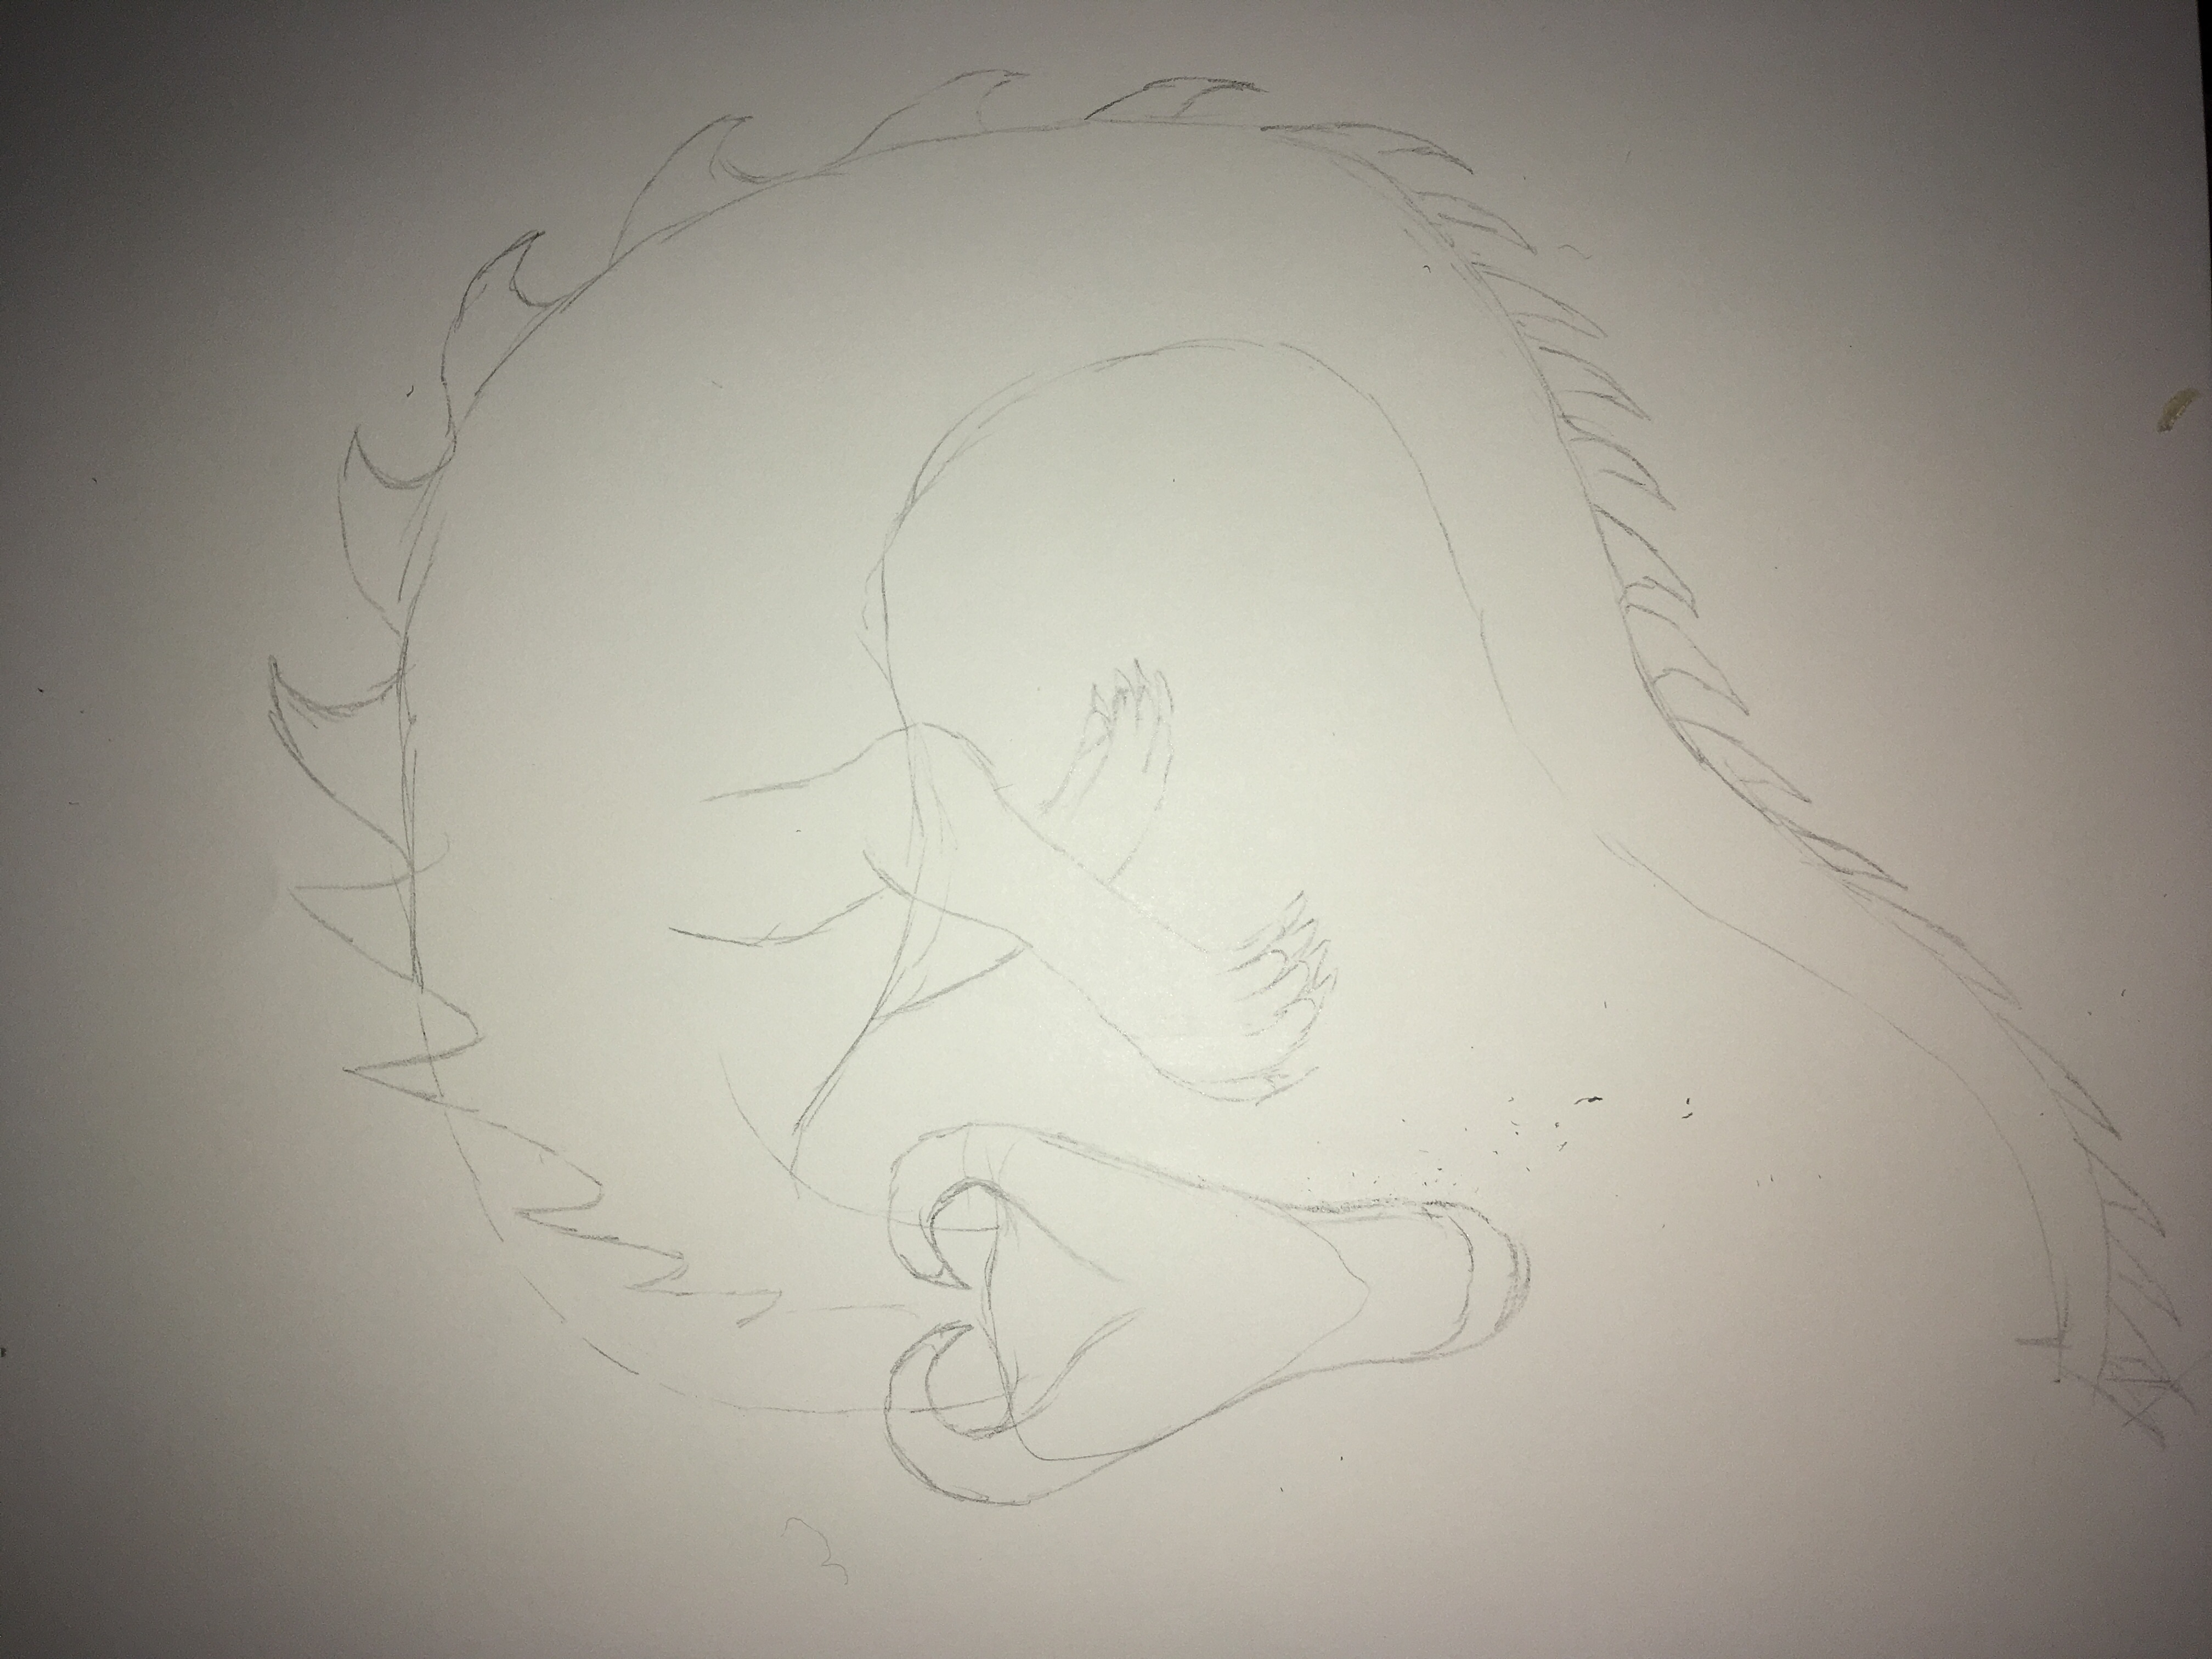 Sketch in pencil dragon curved